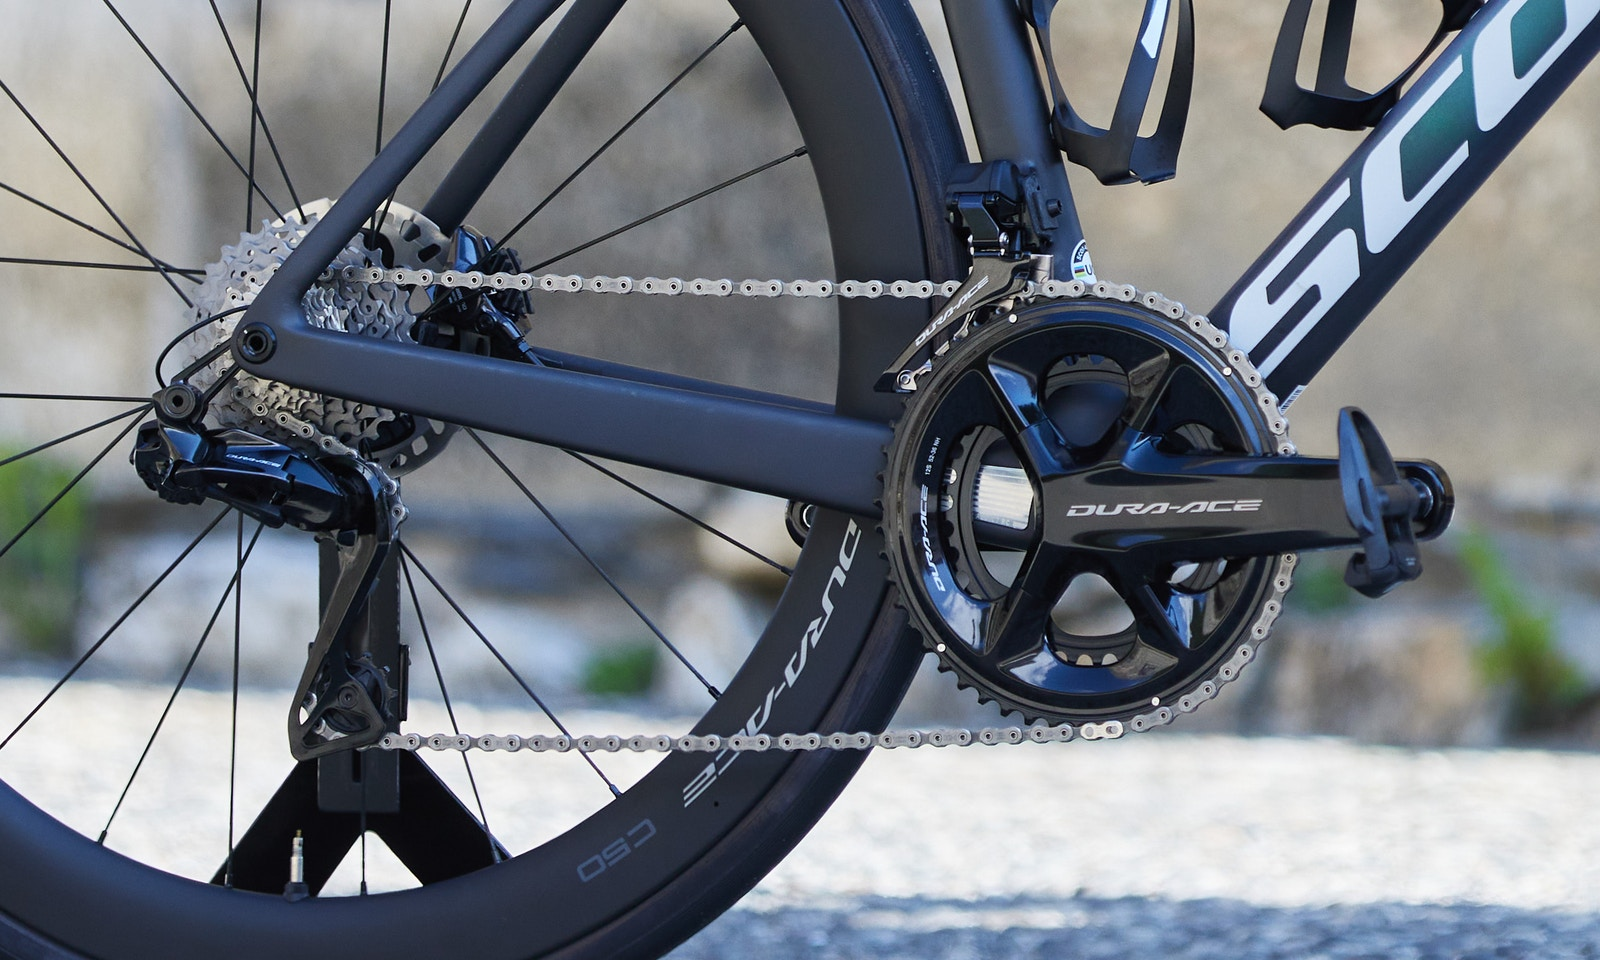 New Shimano 12-Speed Dura-Ace R9200 and Ultegra R8100 Groupsets Released